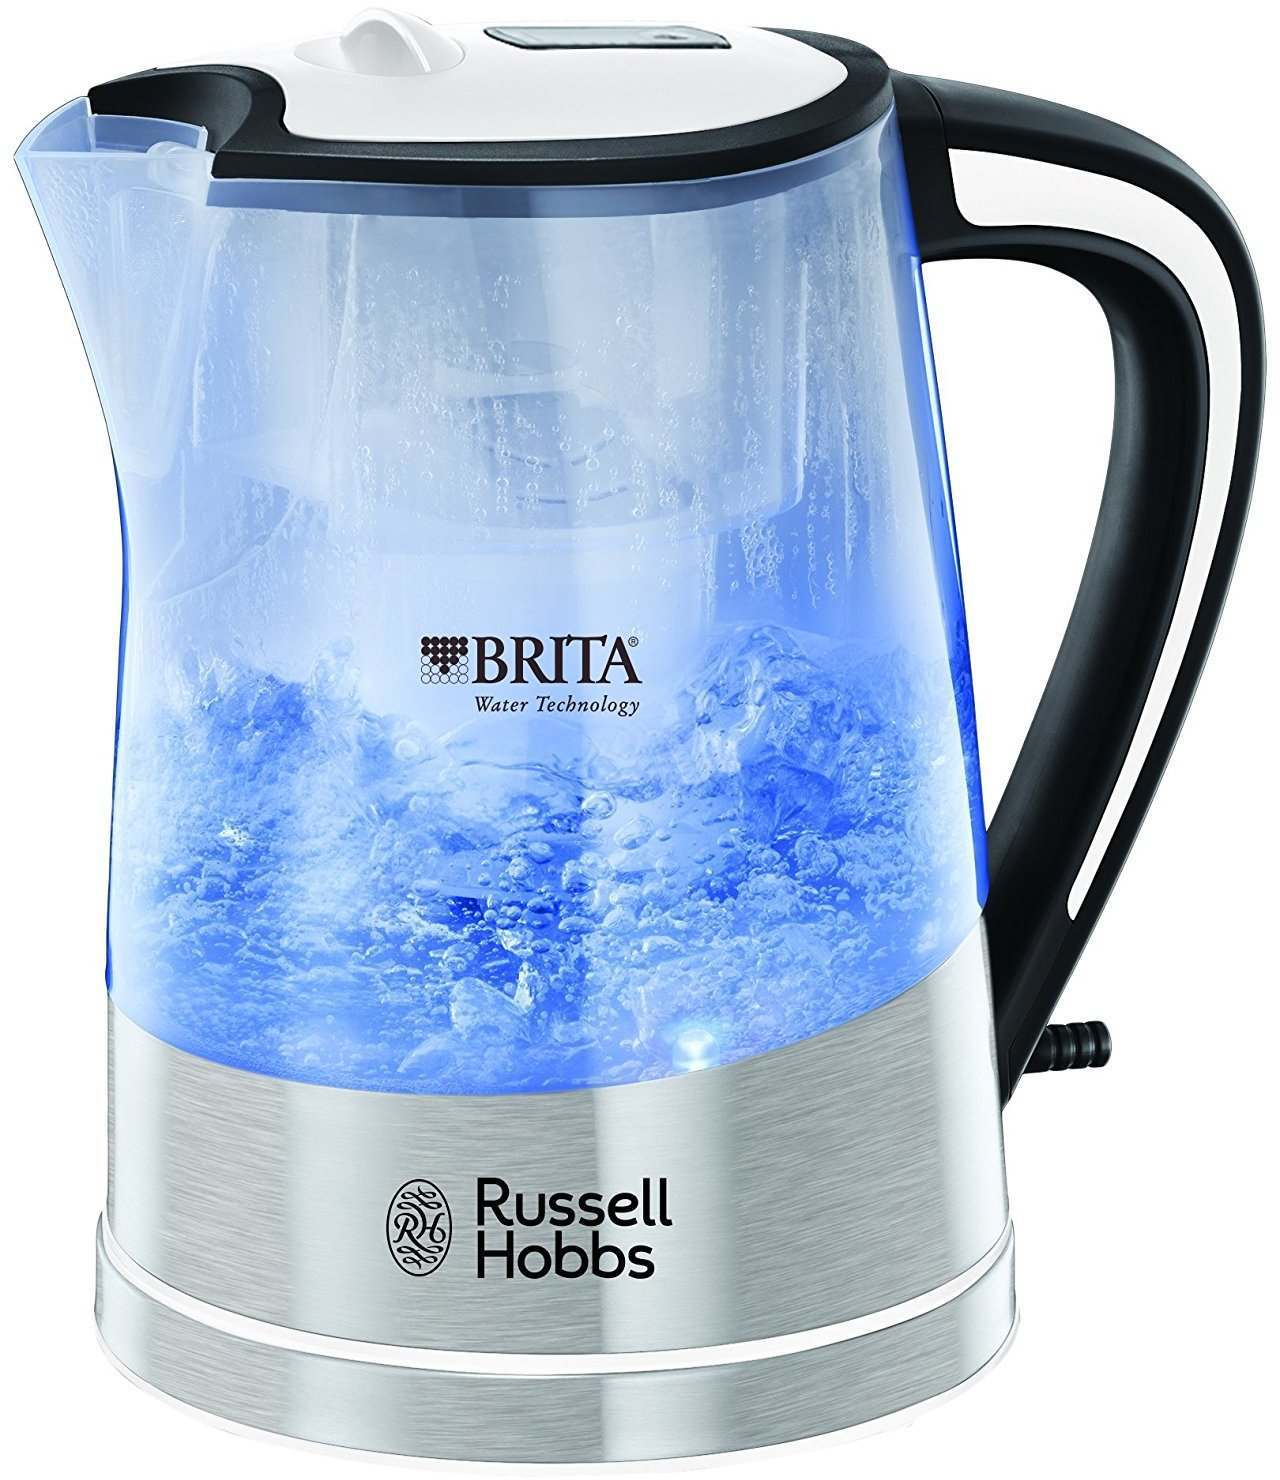 Russell Hobbs 22851 Plastic Brita Filter Purity Kettle